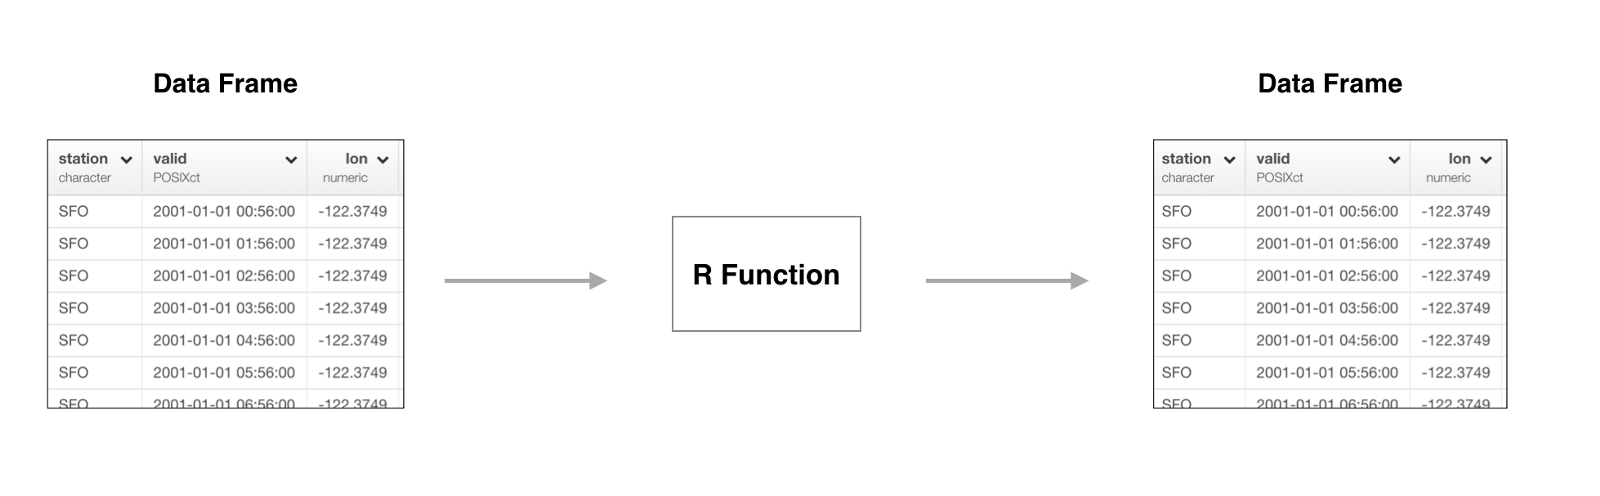 Saving the data to JSON file – learn data science